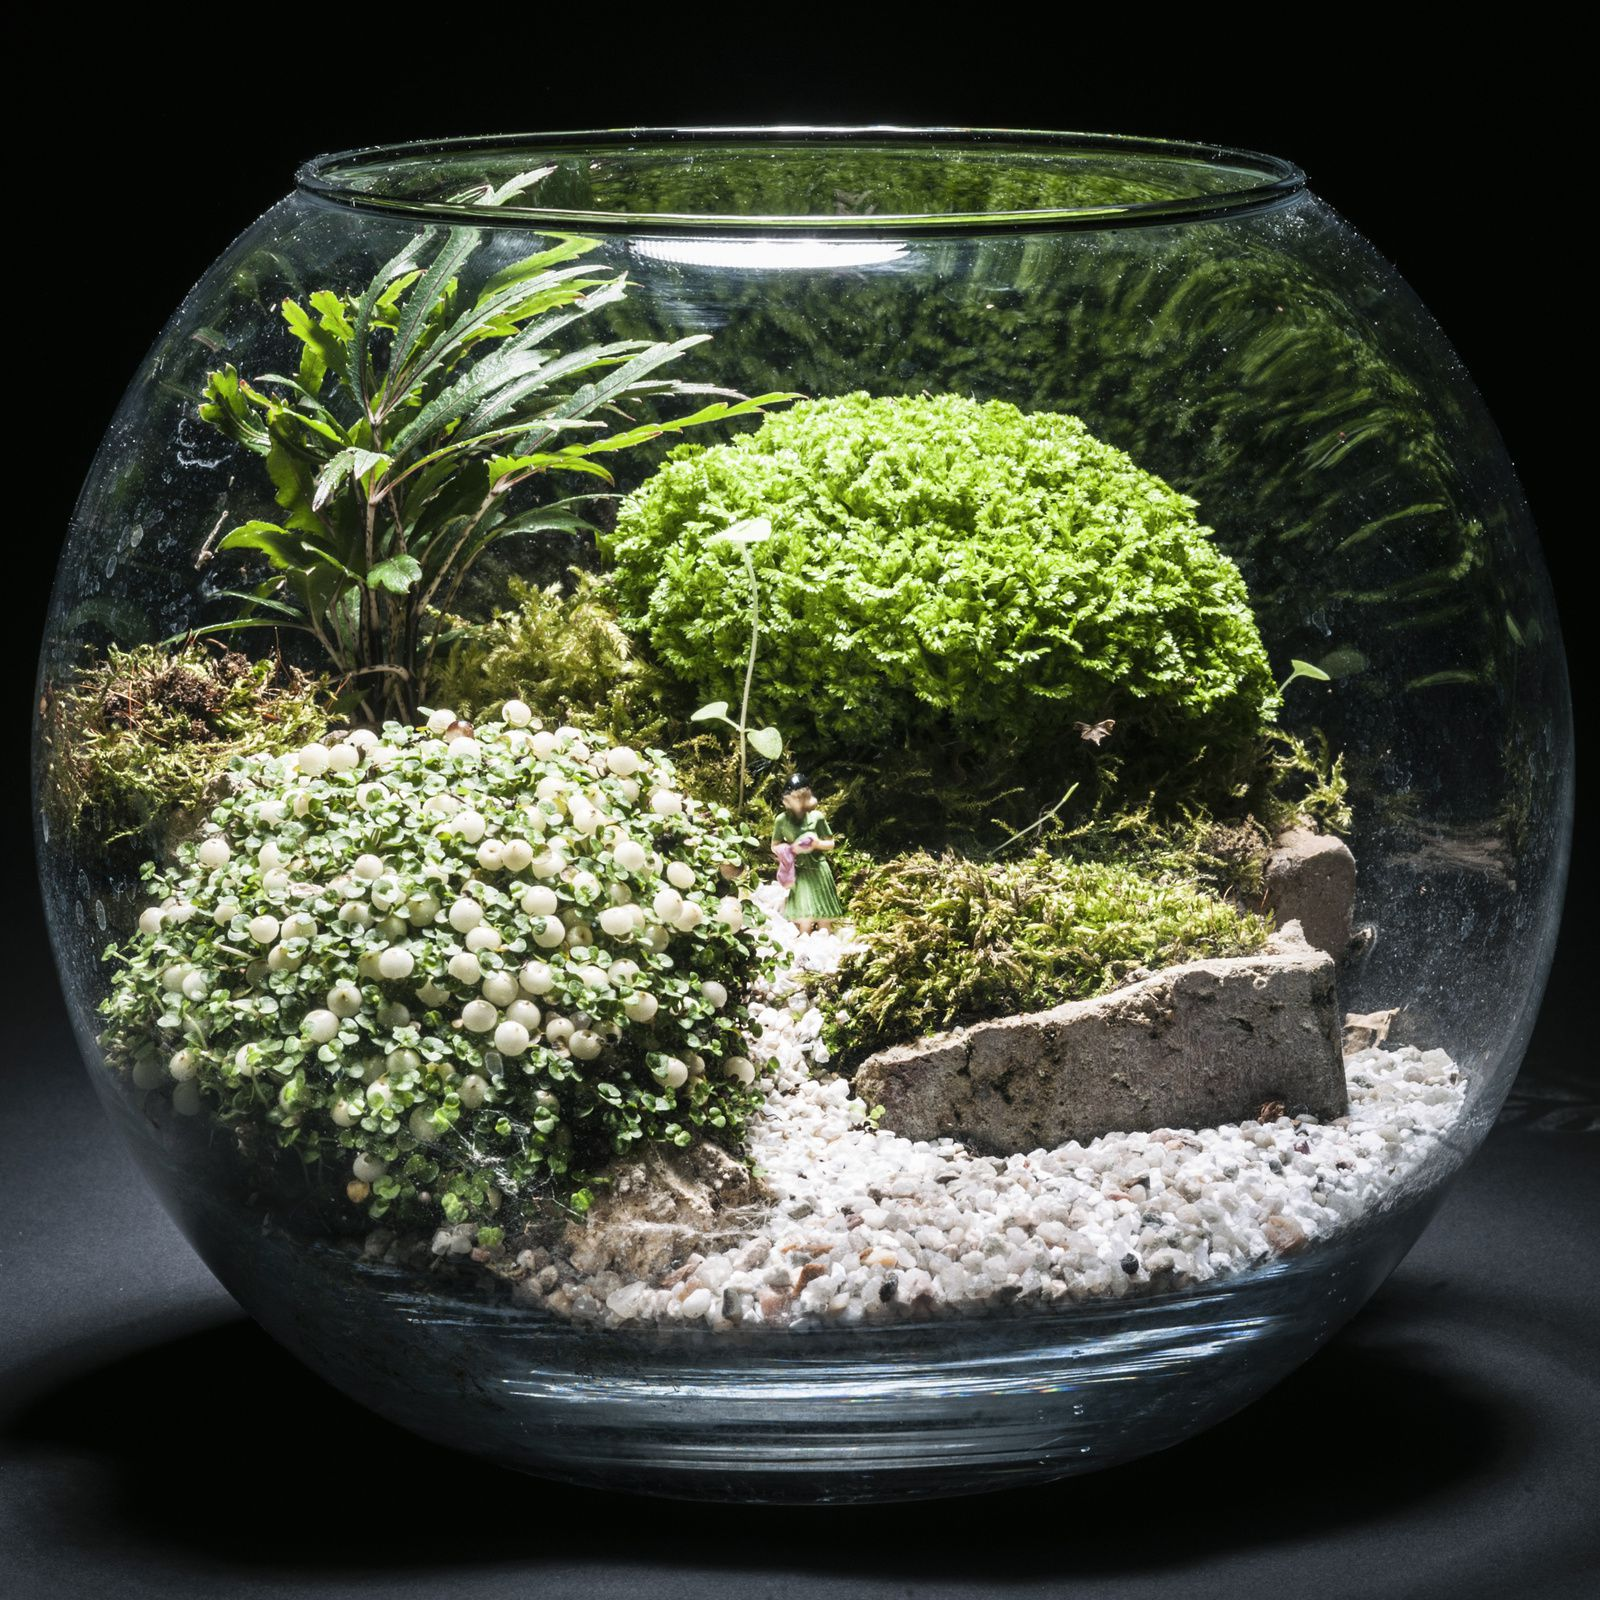 min ral et vegetal l 39 art du terrarium cr atif je realise des paysages vivant en miniature. Black Bedroom Furniture Sets. Home Design Ideas